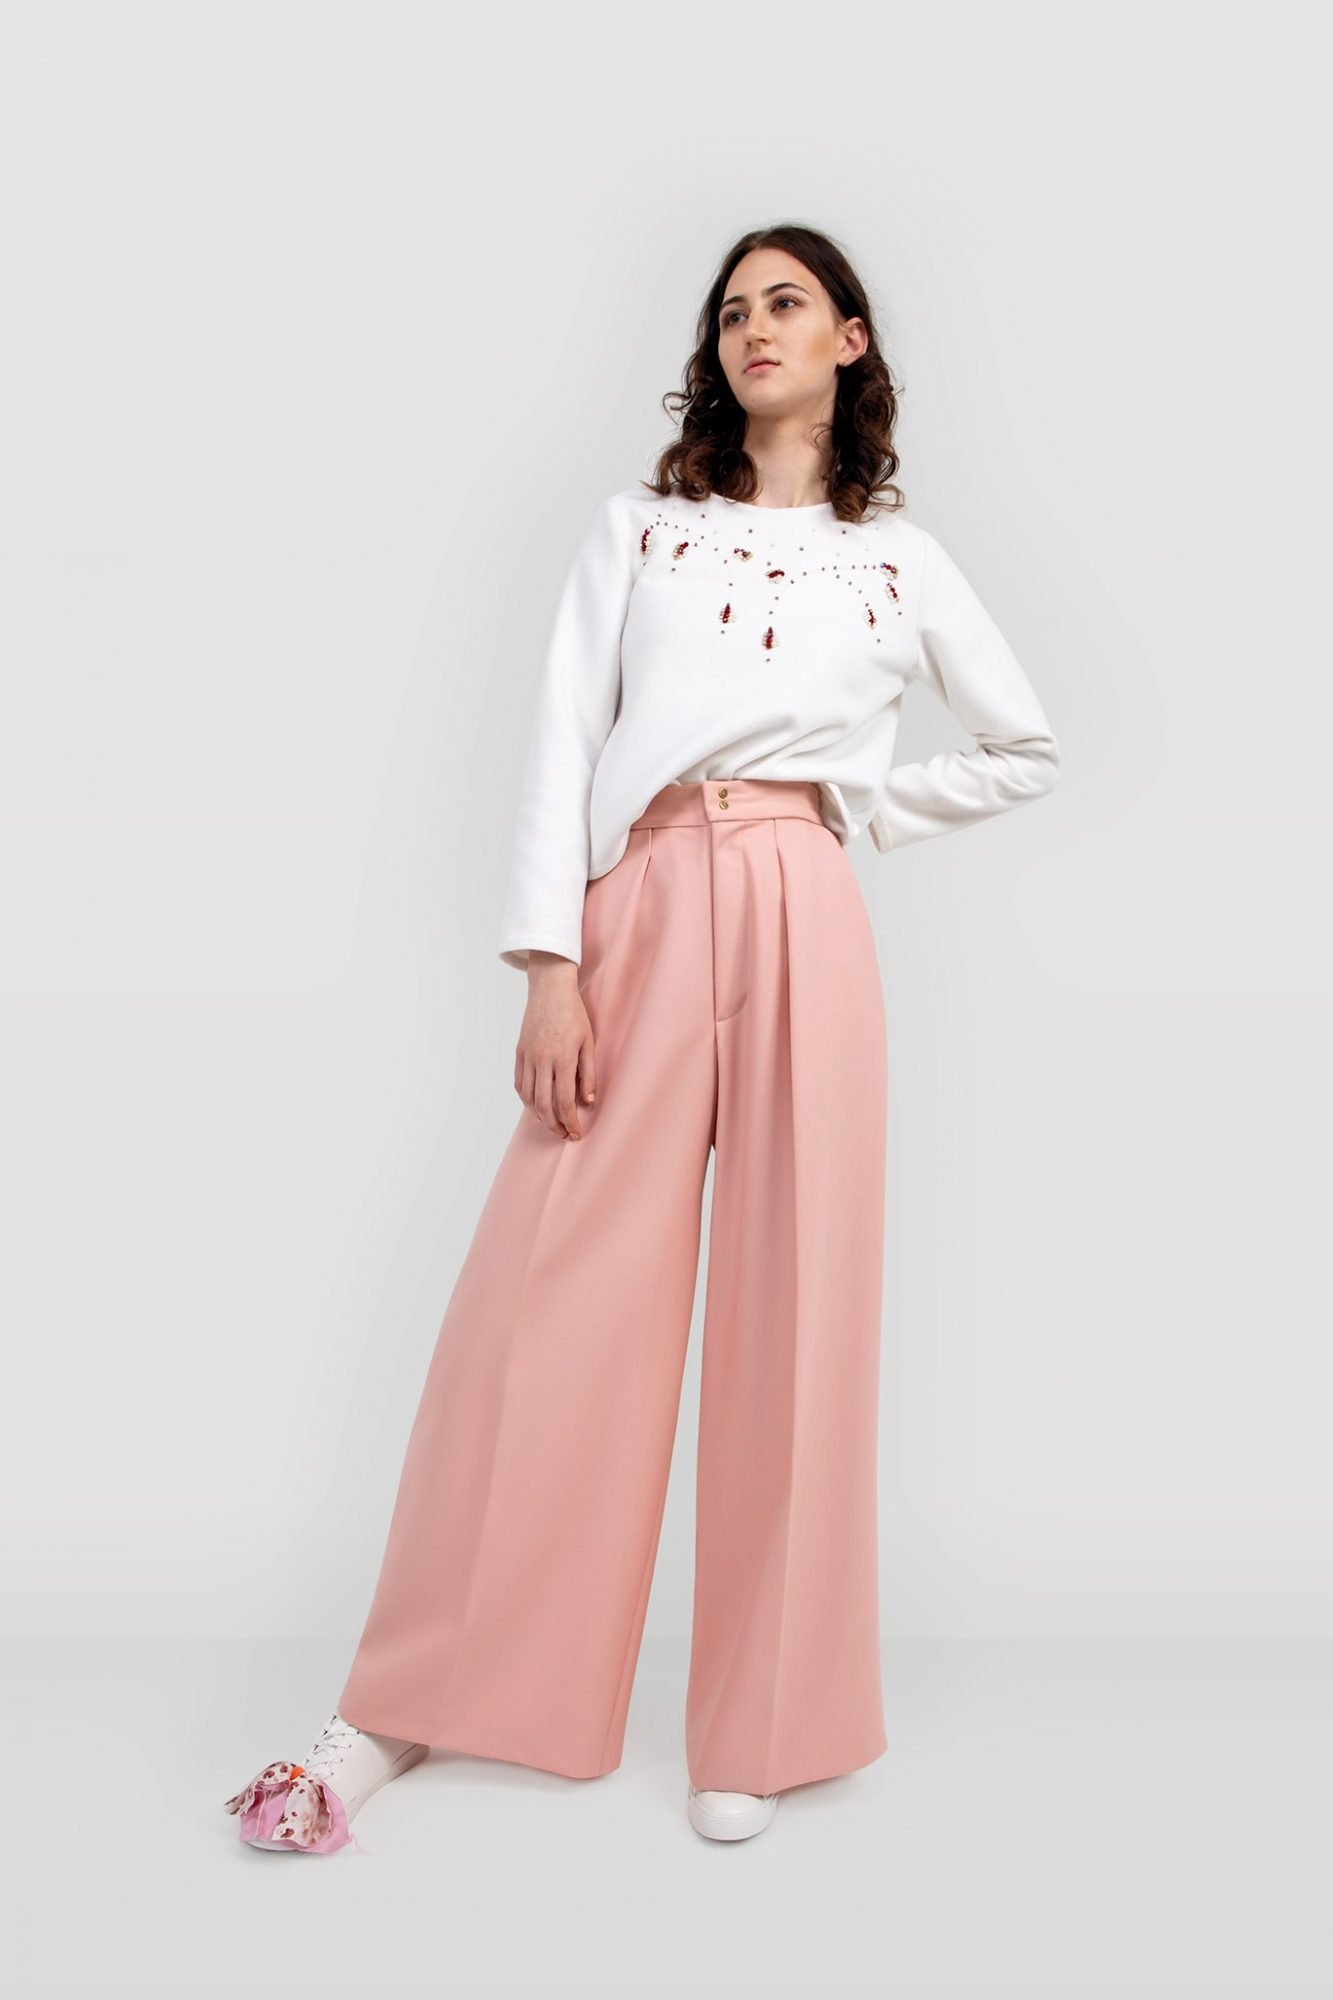 Front of the women's tailored suit trousers ALYSA. High-waisted trousers are cut from a fine wool fabric in a blush pink colour. Made in the UK.